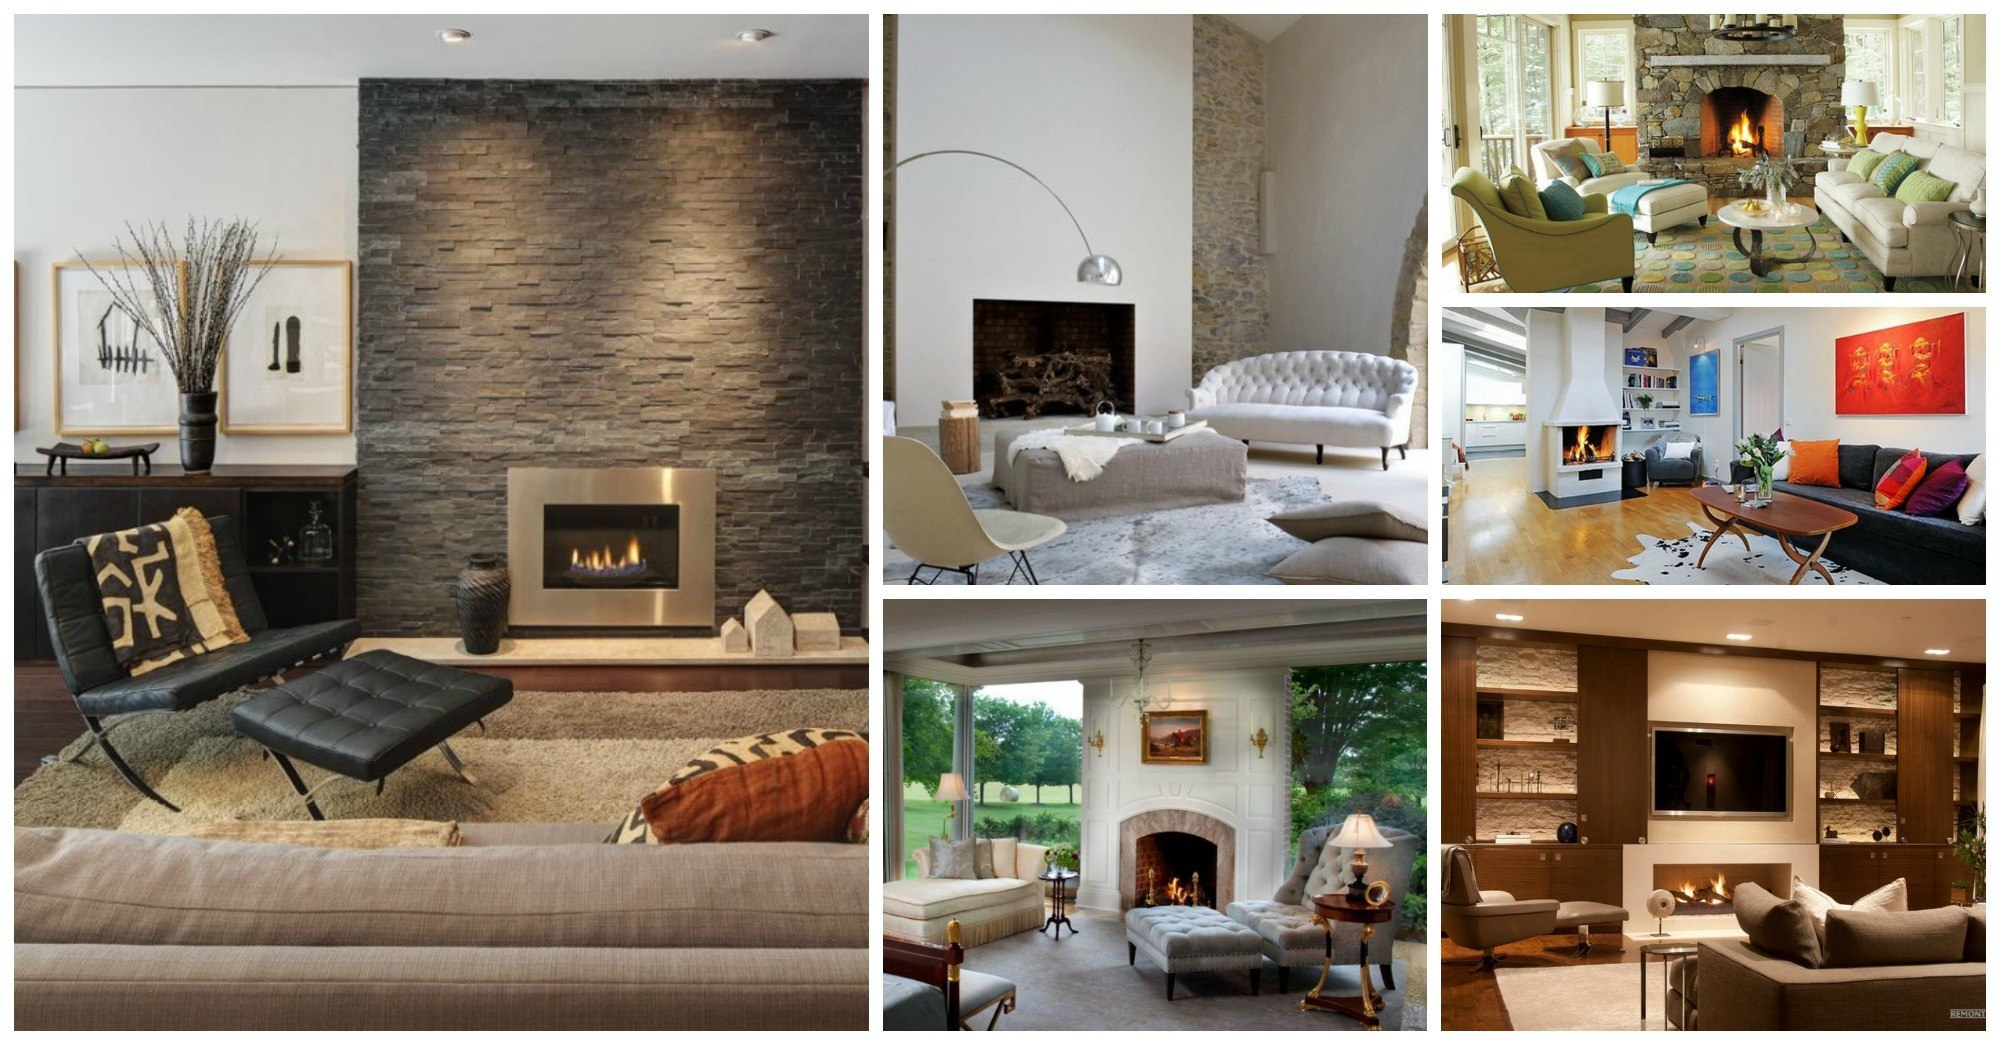 10 Ideas of How To Arrange The Furniture Around A Fireplace